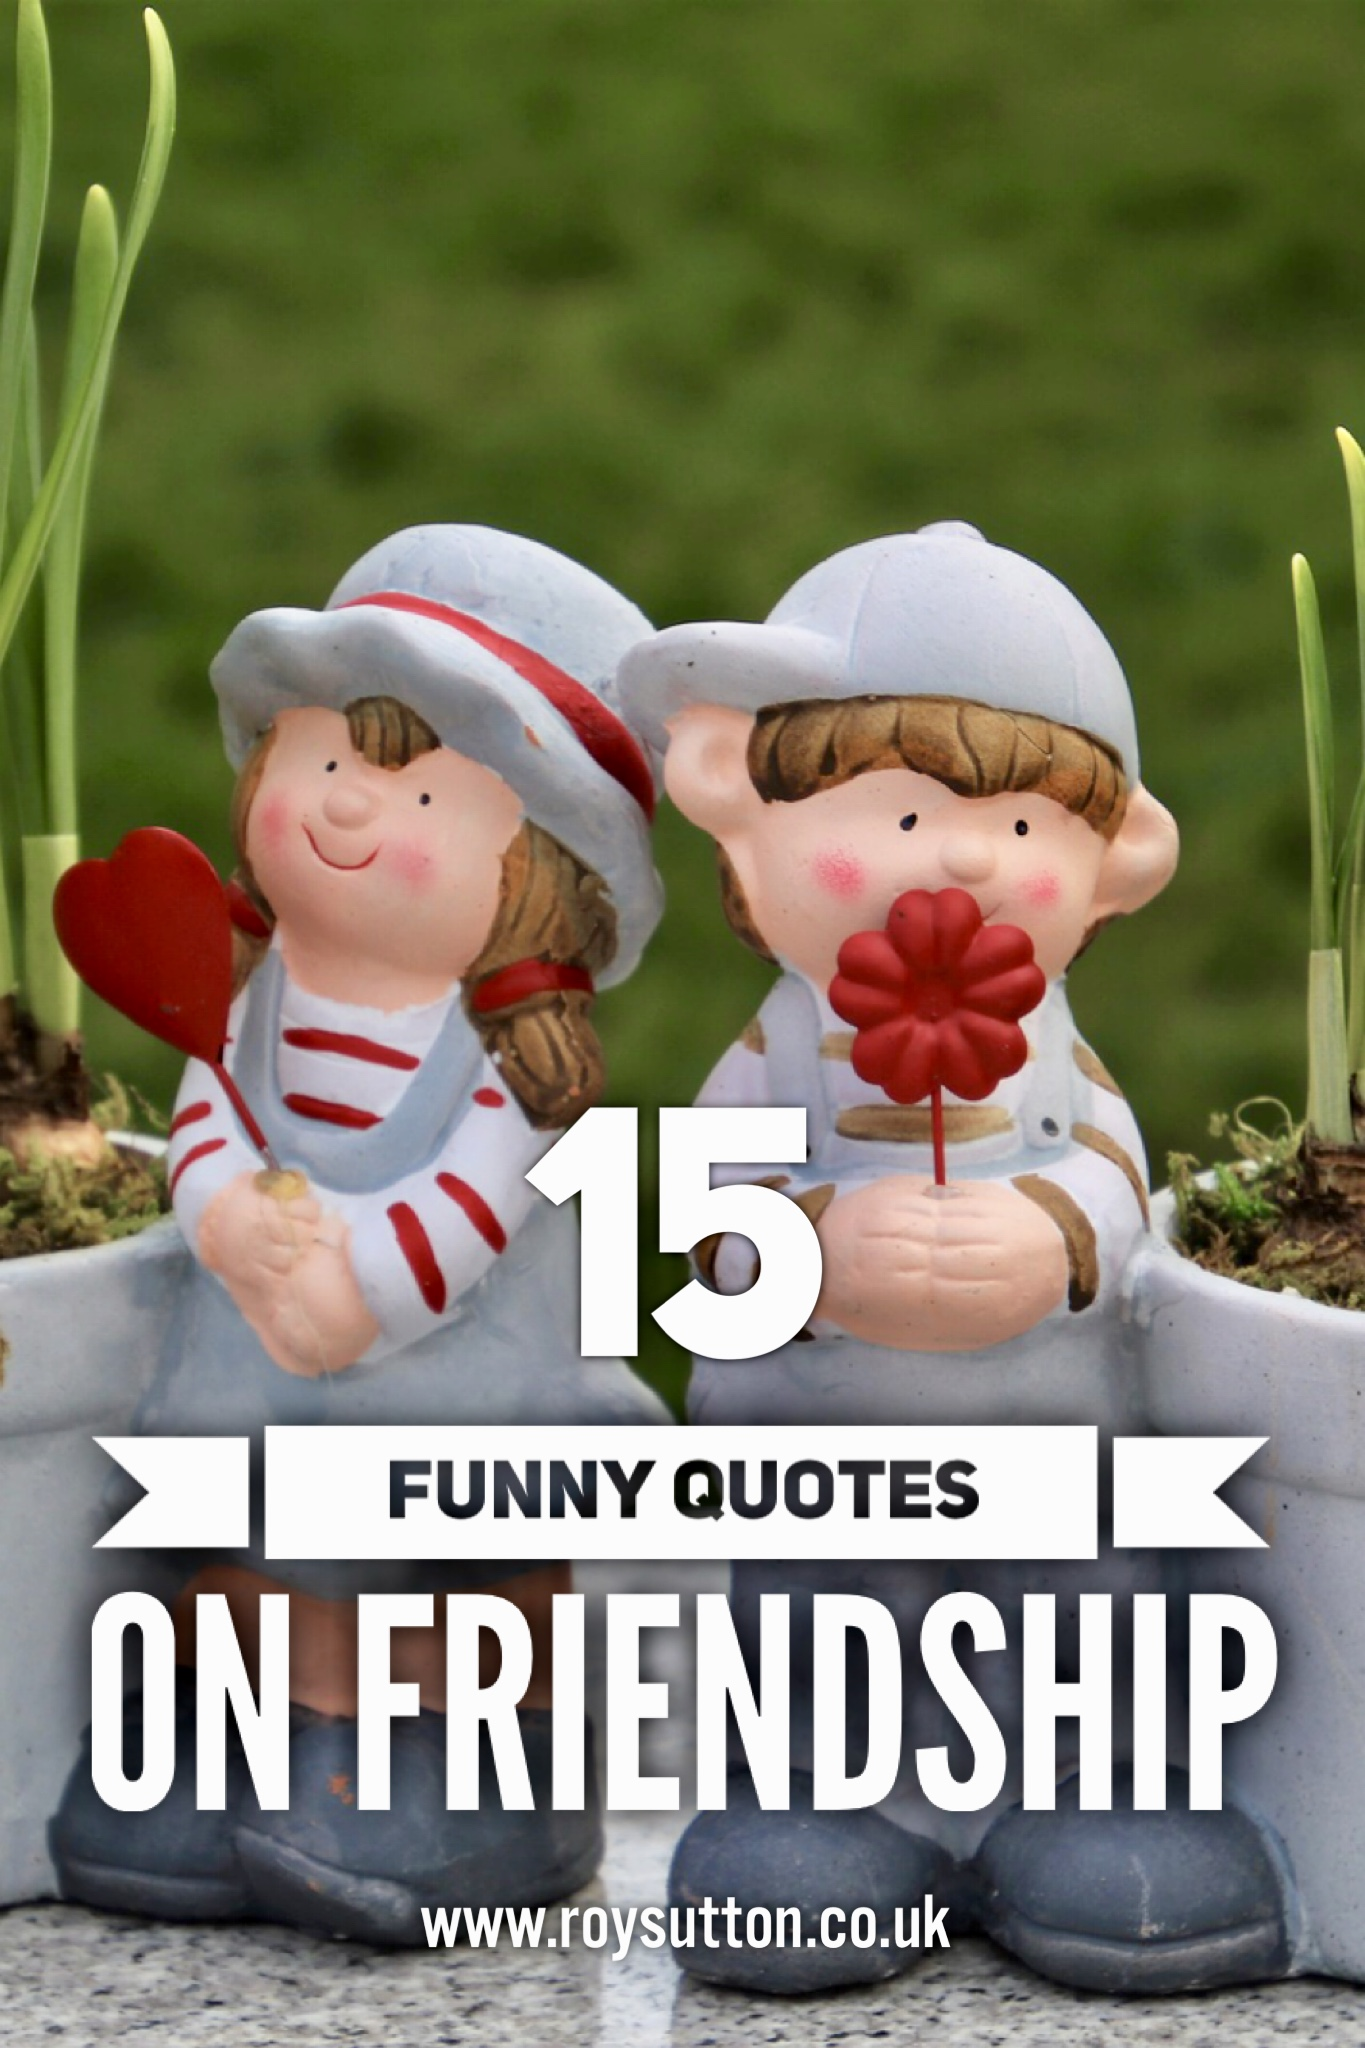 funny quotes on friendship roy sutton